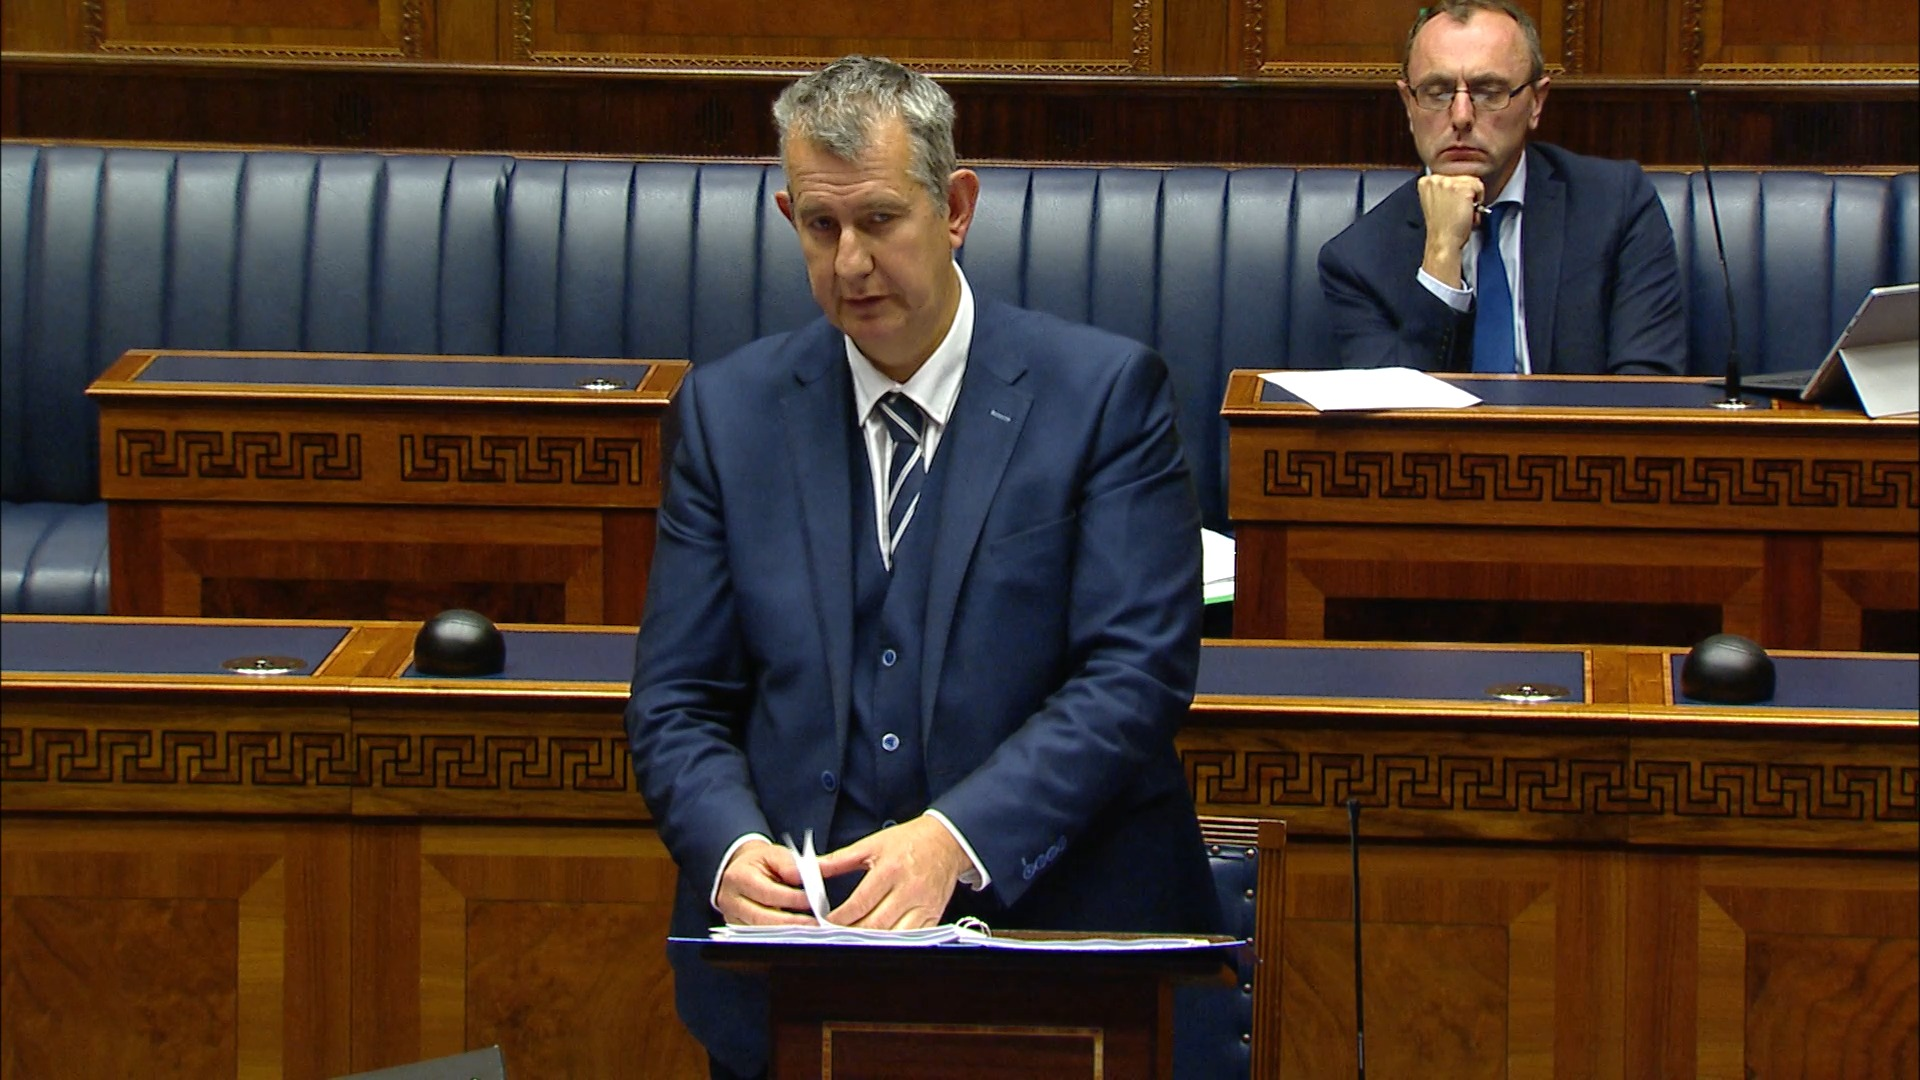 Question Time - Agriculture, Environment and Rural Affairs - Monday 12th October 2020